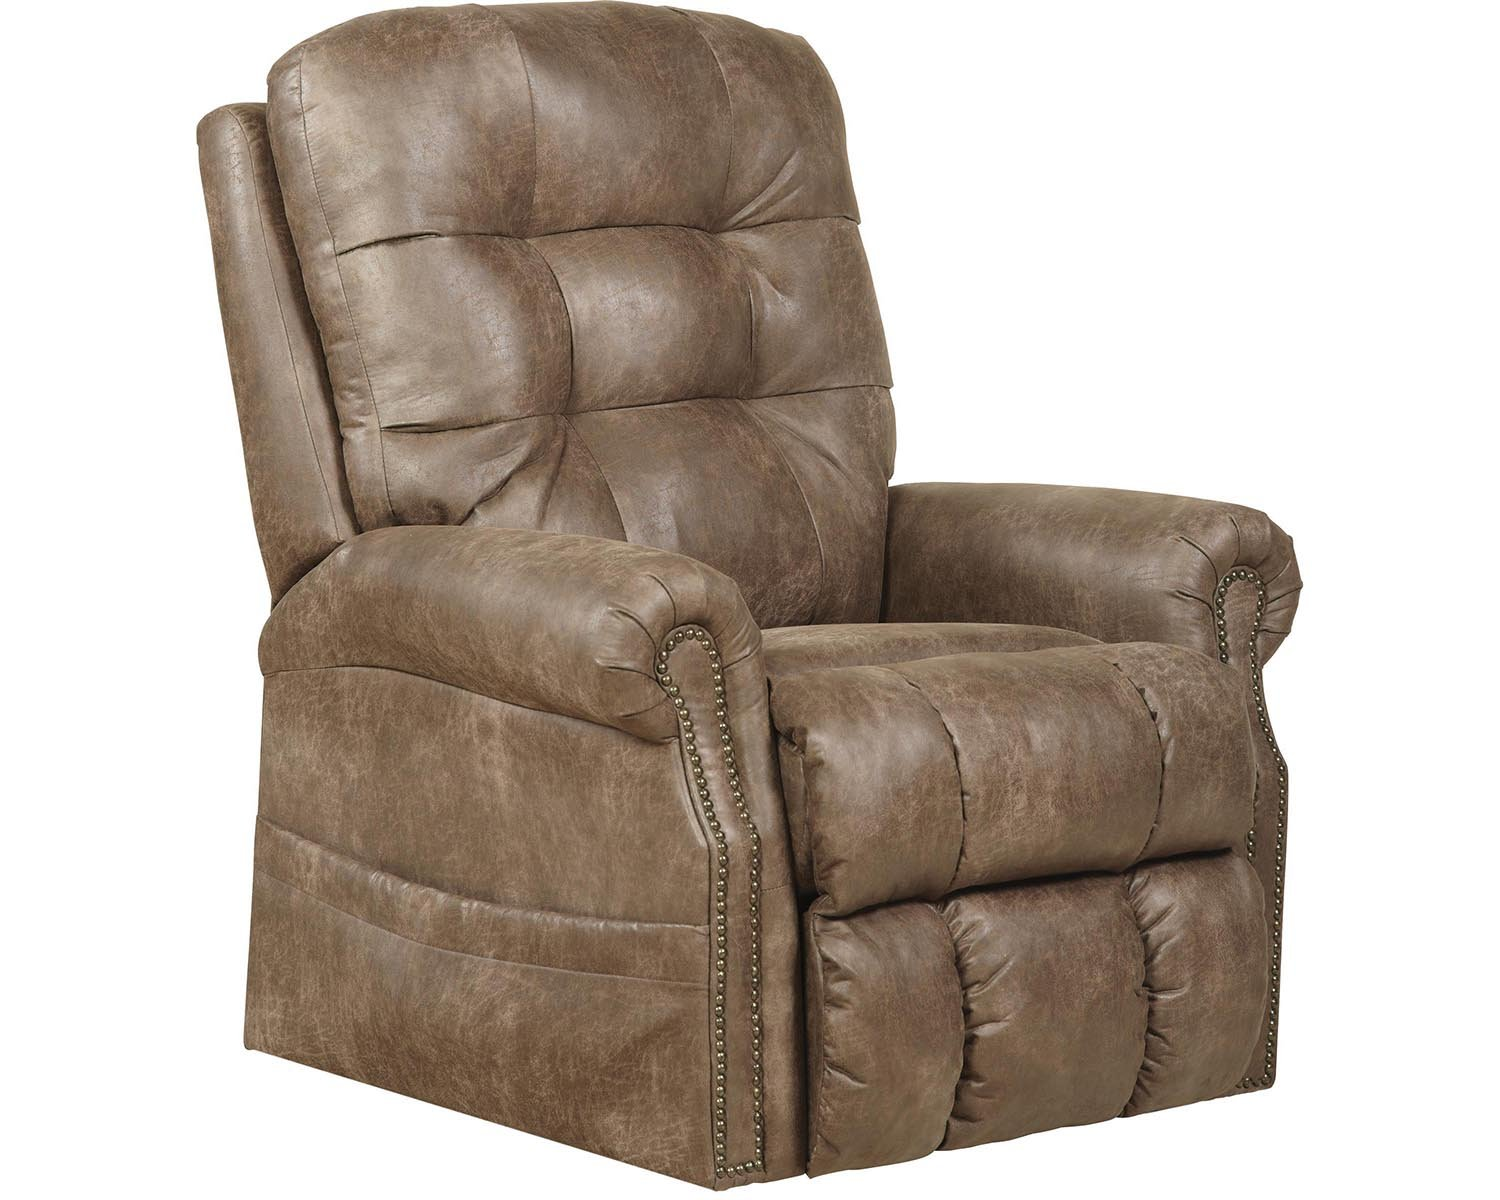 Amazon.com Catnapper Ramsey 4857 Power Full Lay Flat Lift Chair Recliner with Heat and Massage - Easy Care Faux Leather Vinyl - Silt Kitchen u0026 Dining  sc 1 st  Amazon.com & Amazon.com: Catnapper Ramsey 4857 Power Full Lay Flat Lift Chair ... islam-shia.org